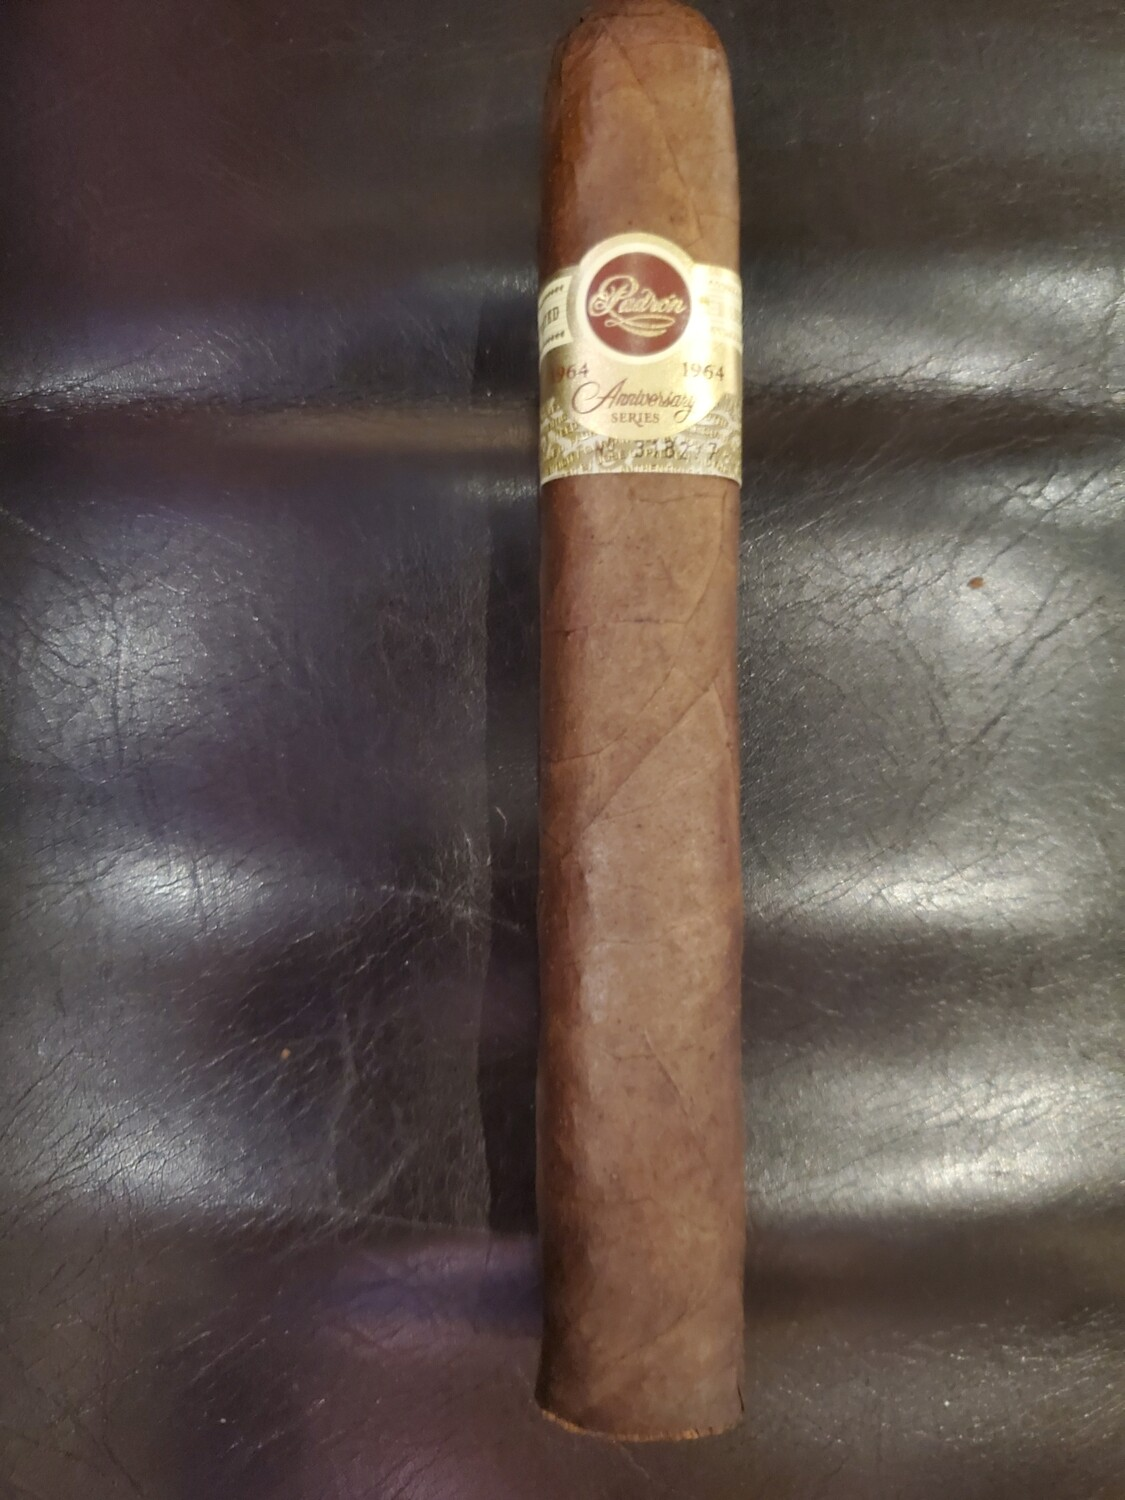 Padron 1964 No. 4 Natural